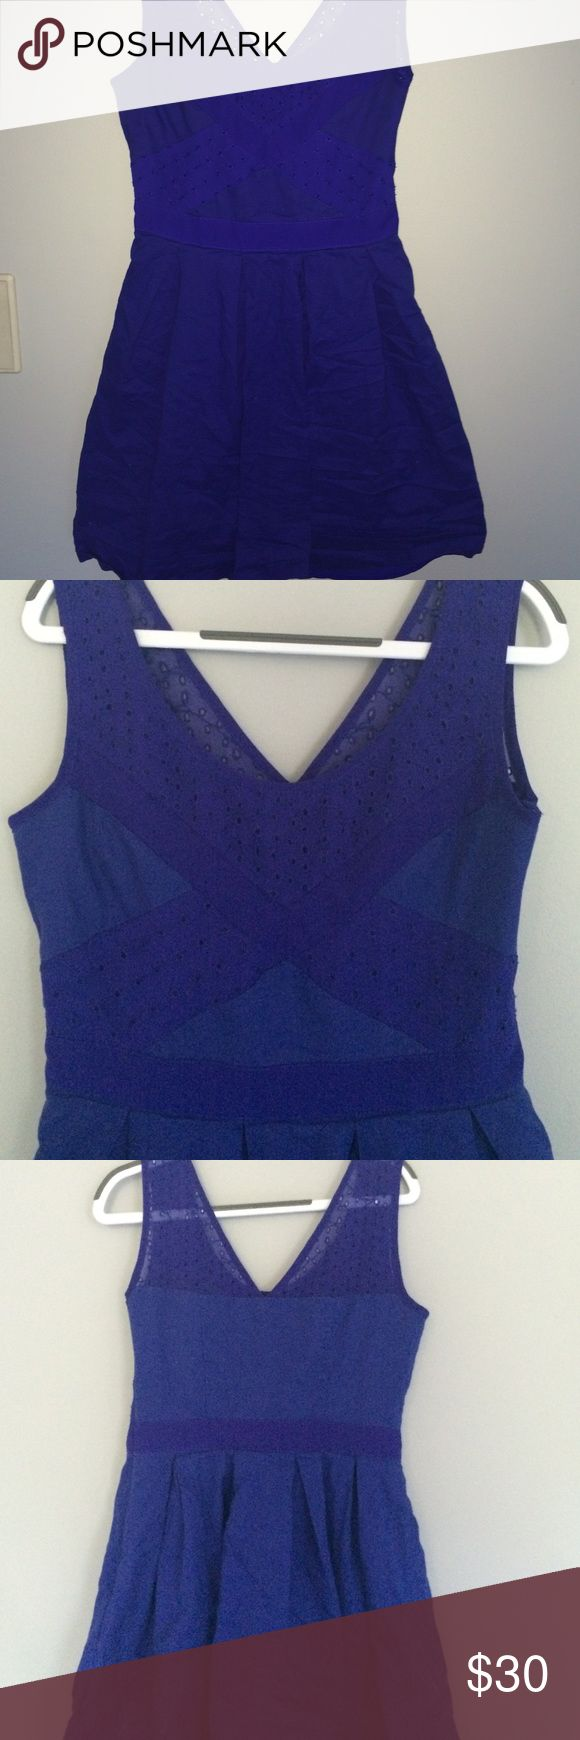 AEO Indigo Eyelet Dress Gorgeous indigo American Eagle dress! Selling because it's too small for me. Beautiful eyelet design at top of dress in front and back. Zipper on side. Two layers of skirt. Only worn a few times, in perfect condition. American Eagle Outfitters Dresses